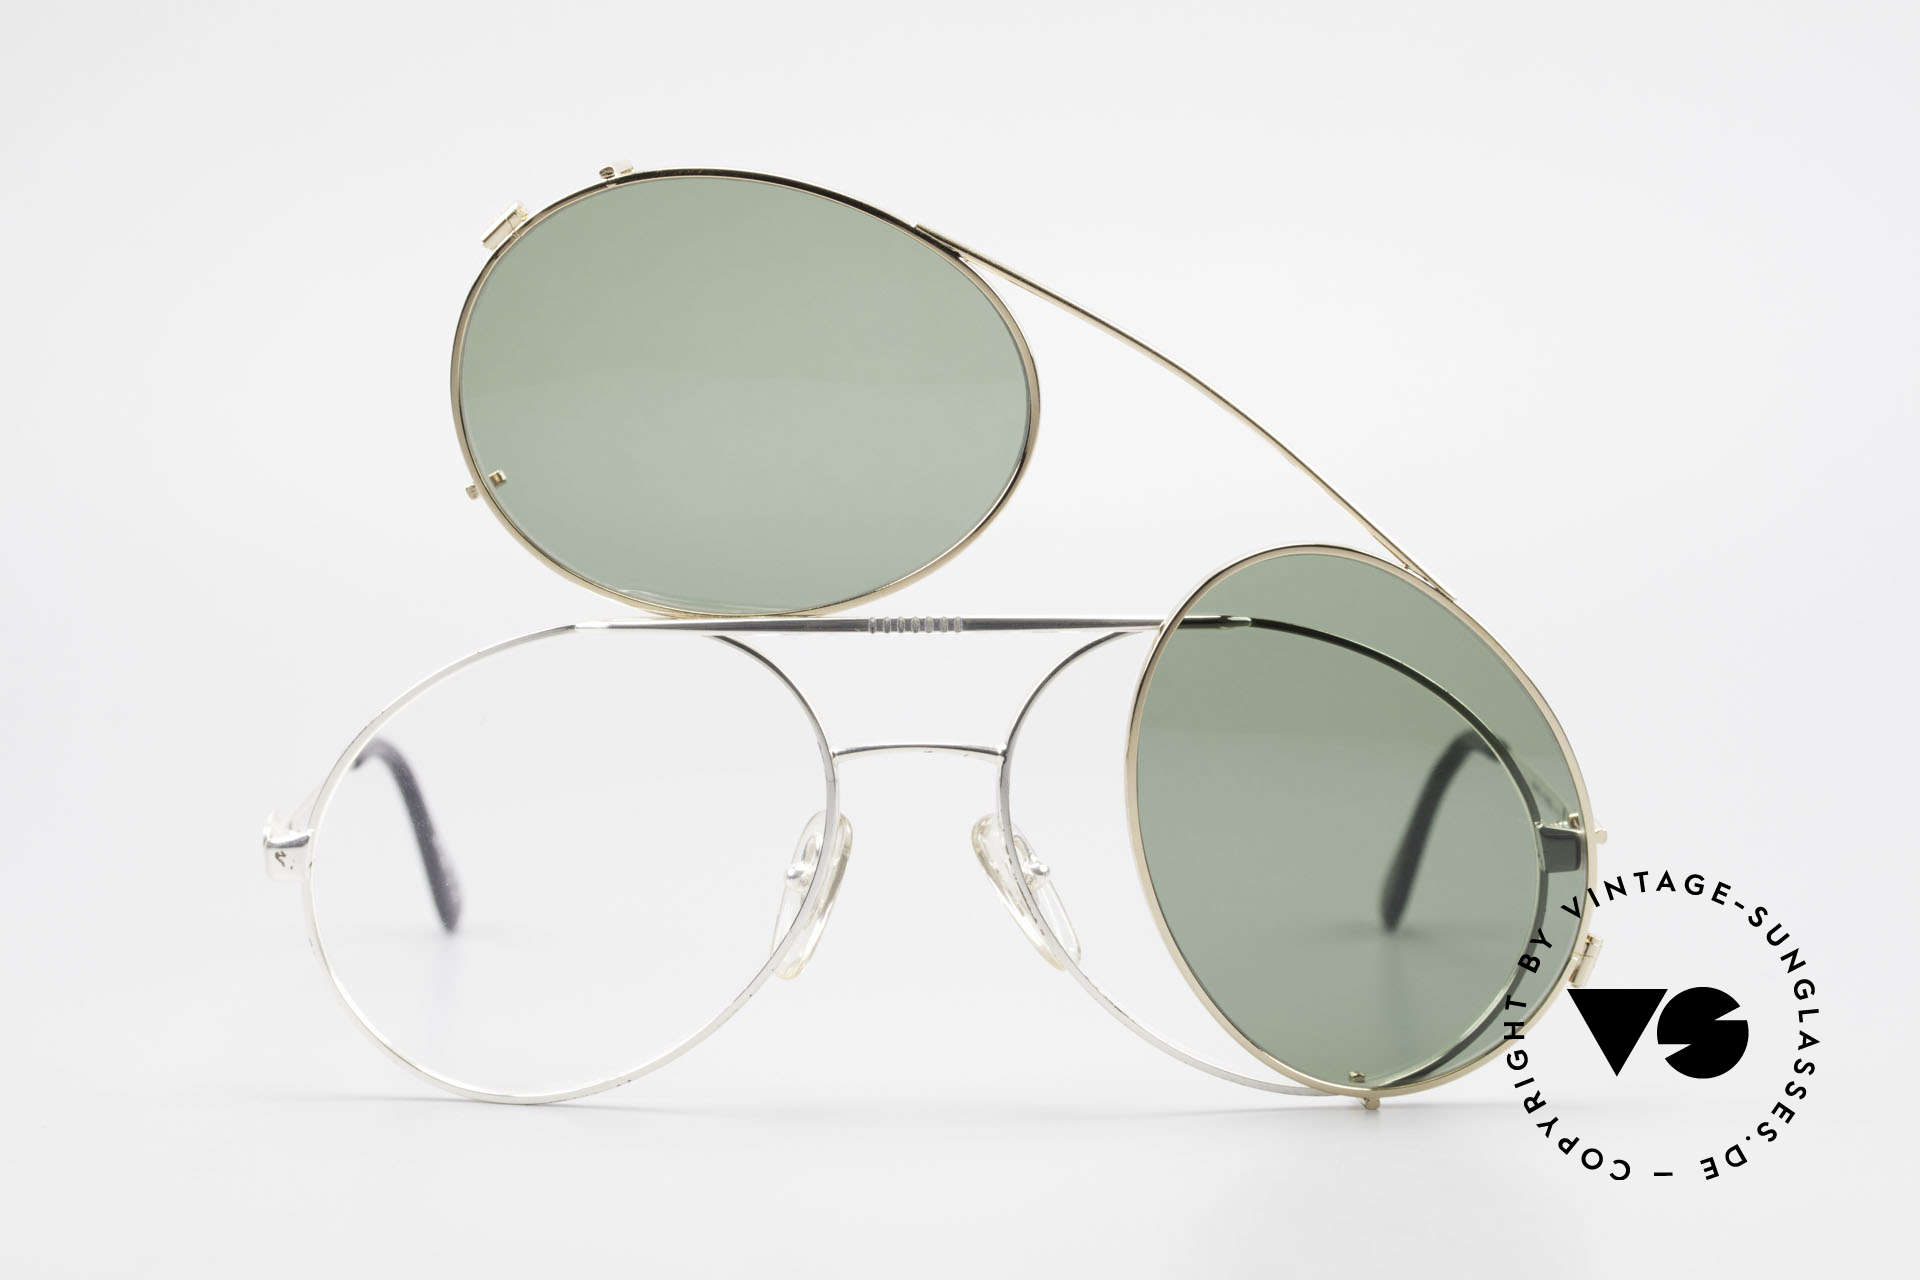 Bugatti 65996 80s Vintage Frame With Clip On, unworn; like all our vintage Bugatti sunglasses, Made for Men